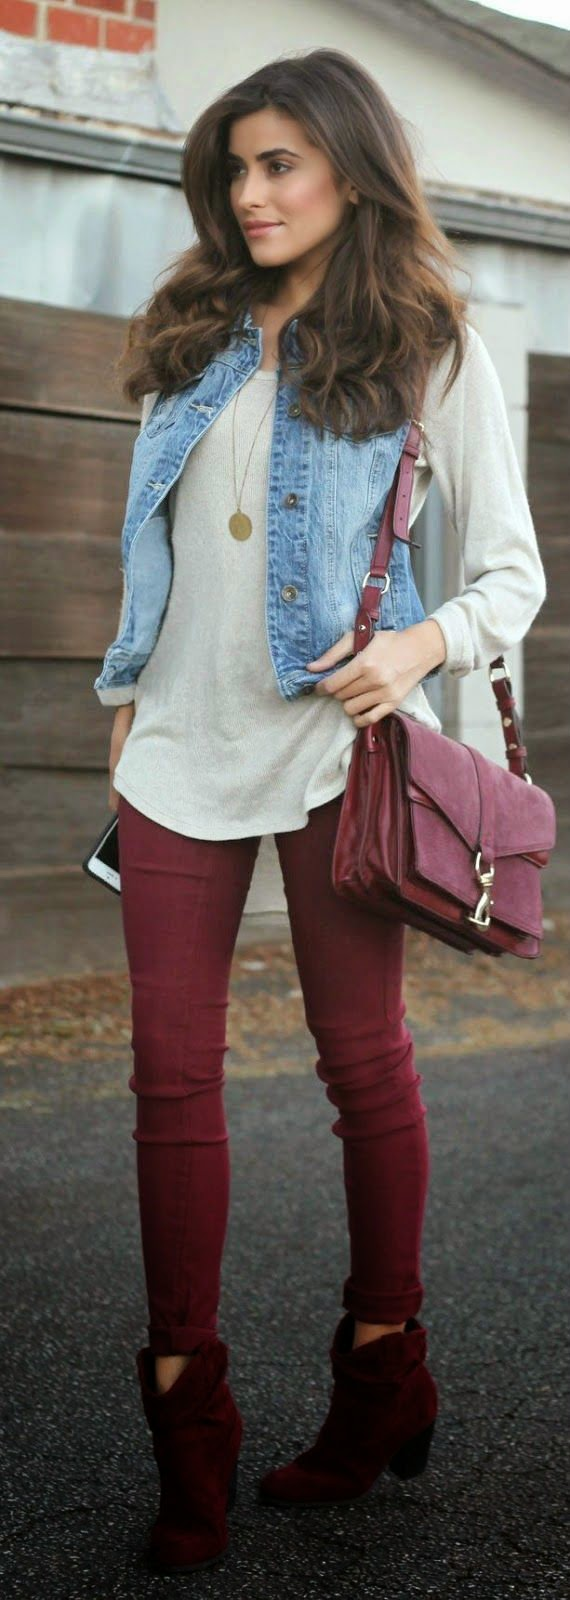 Fashion-Style-Outfits-2015